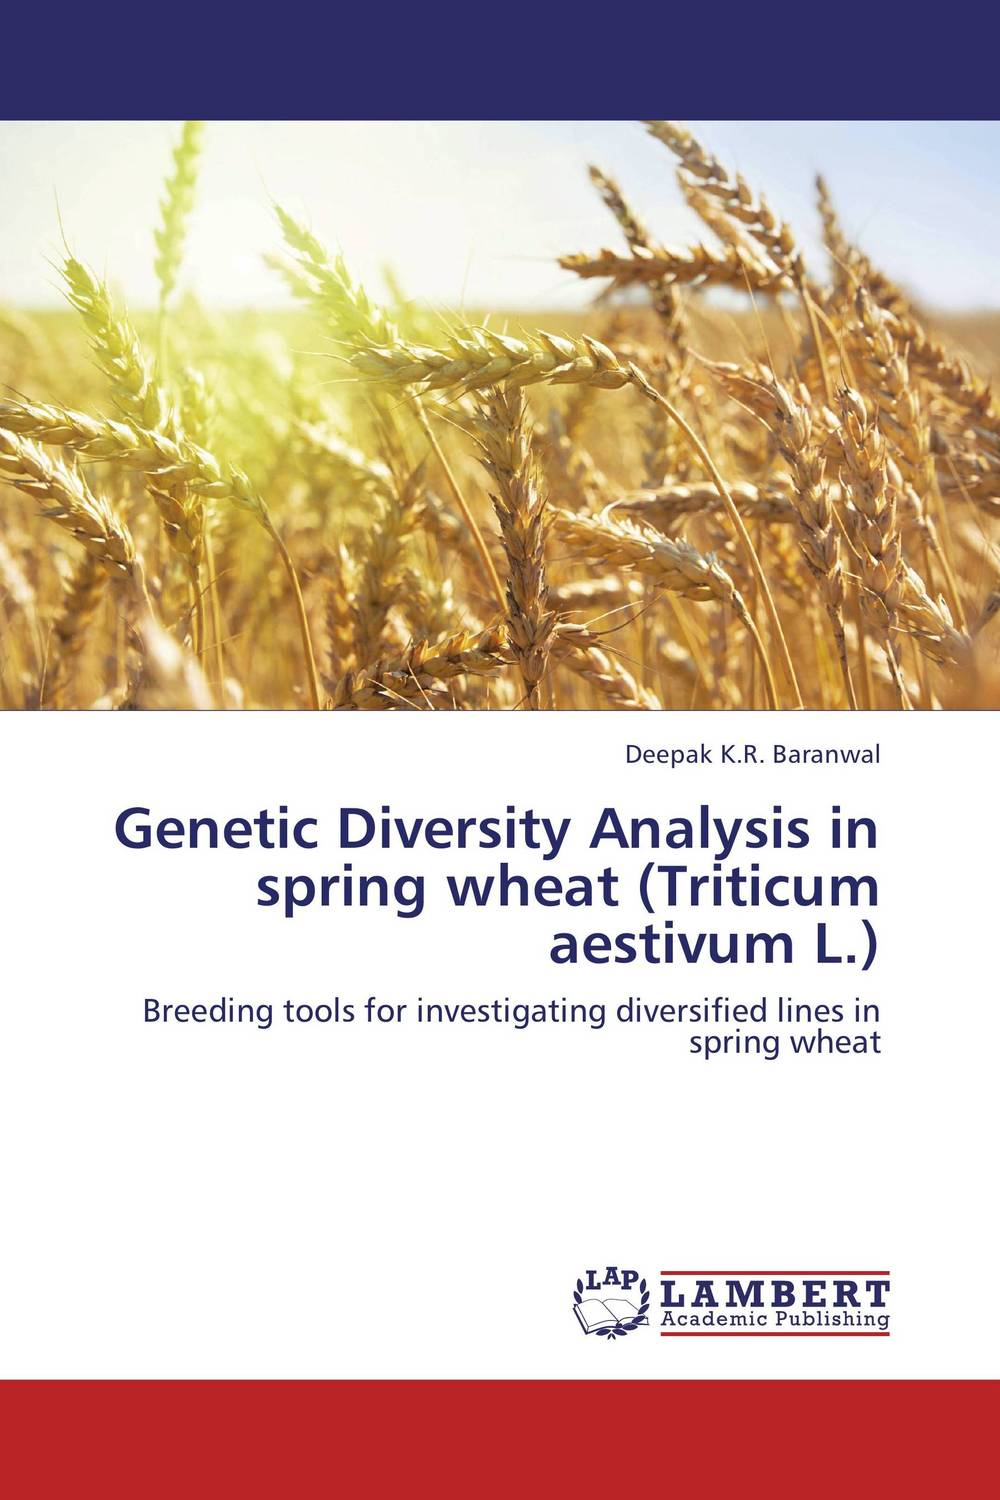 Genetic Diversity Analysis in spring wheat  (Triticum aestivum L.) genetic diversity in linseed